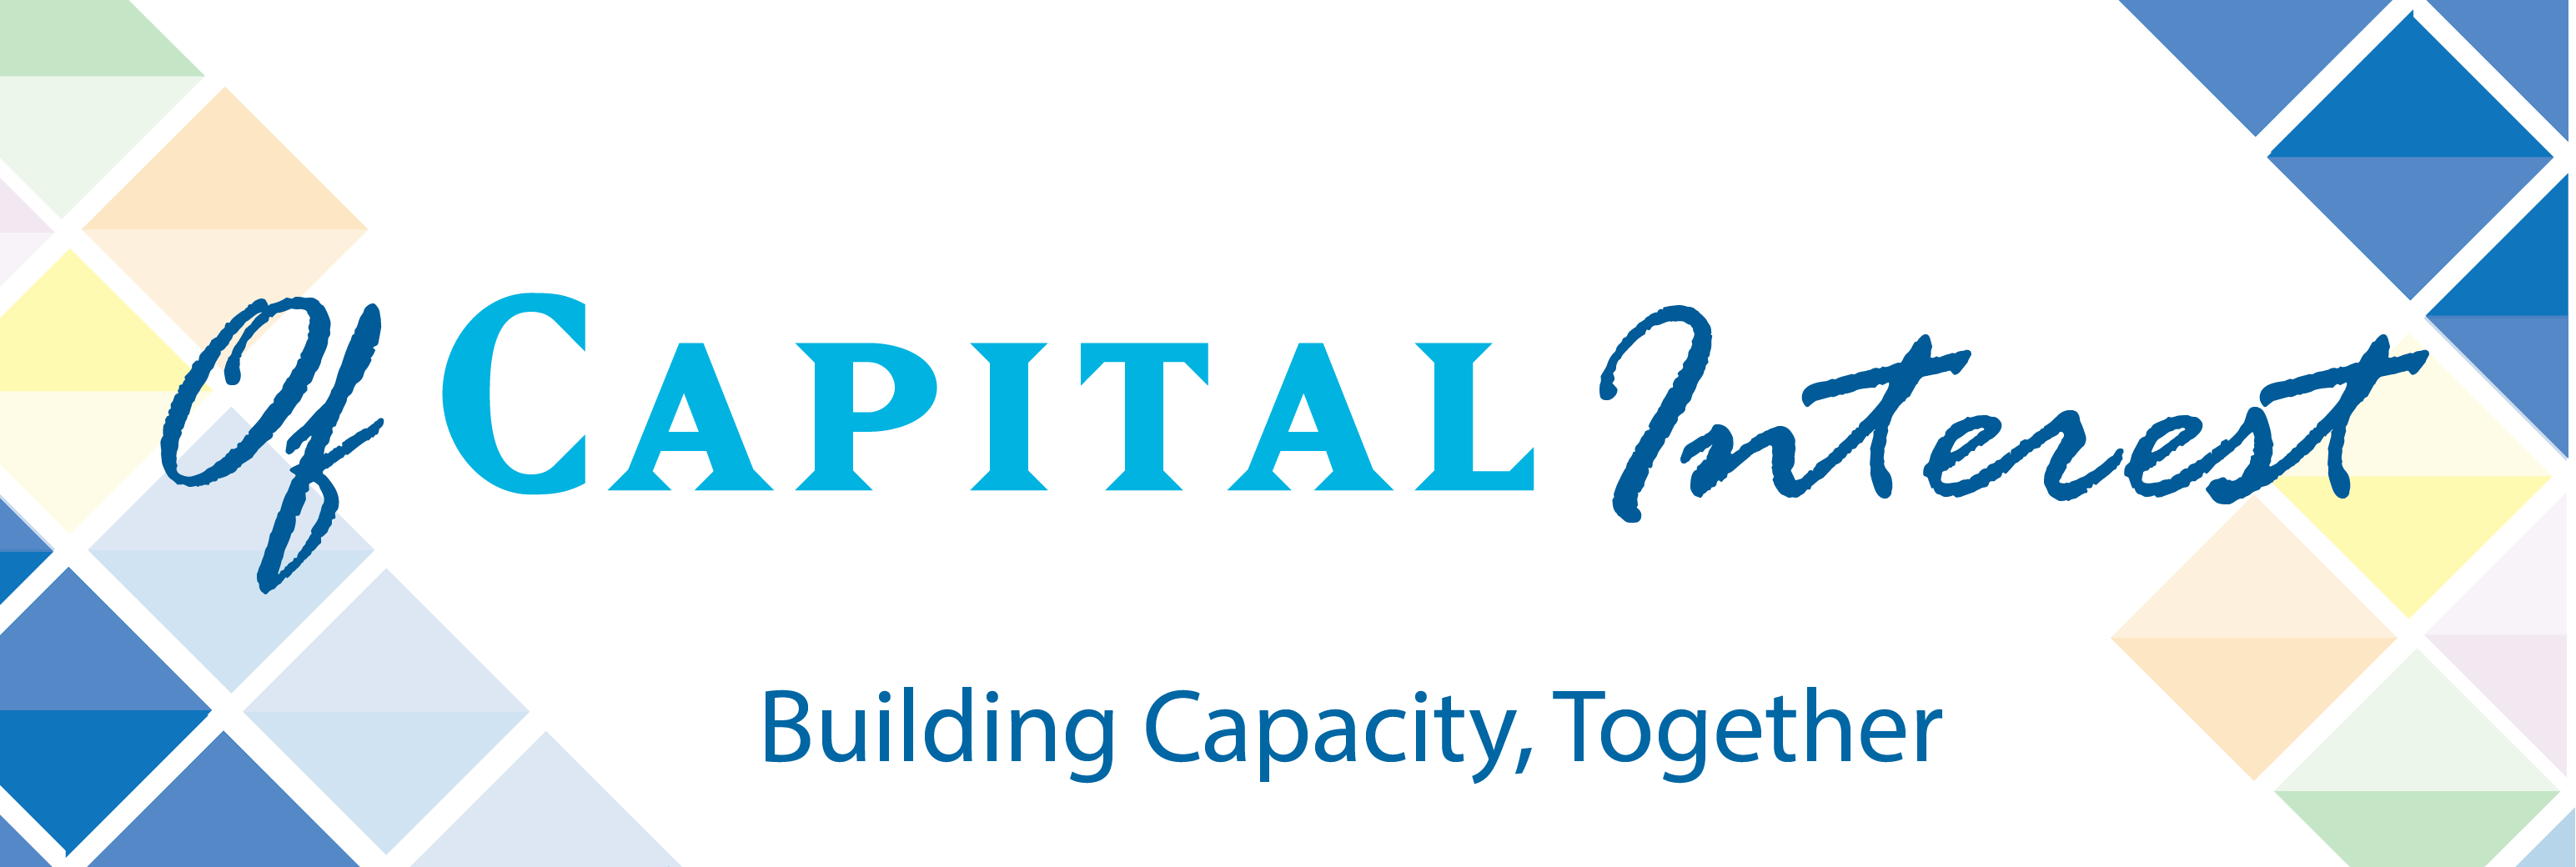 Capital Interest Header